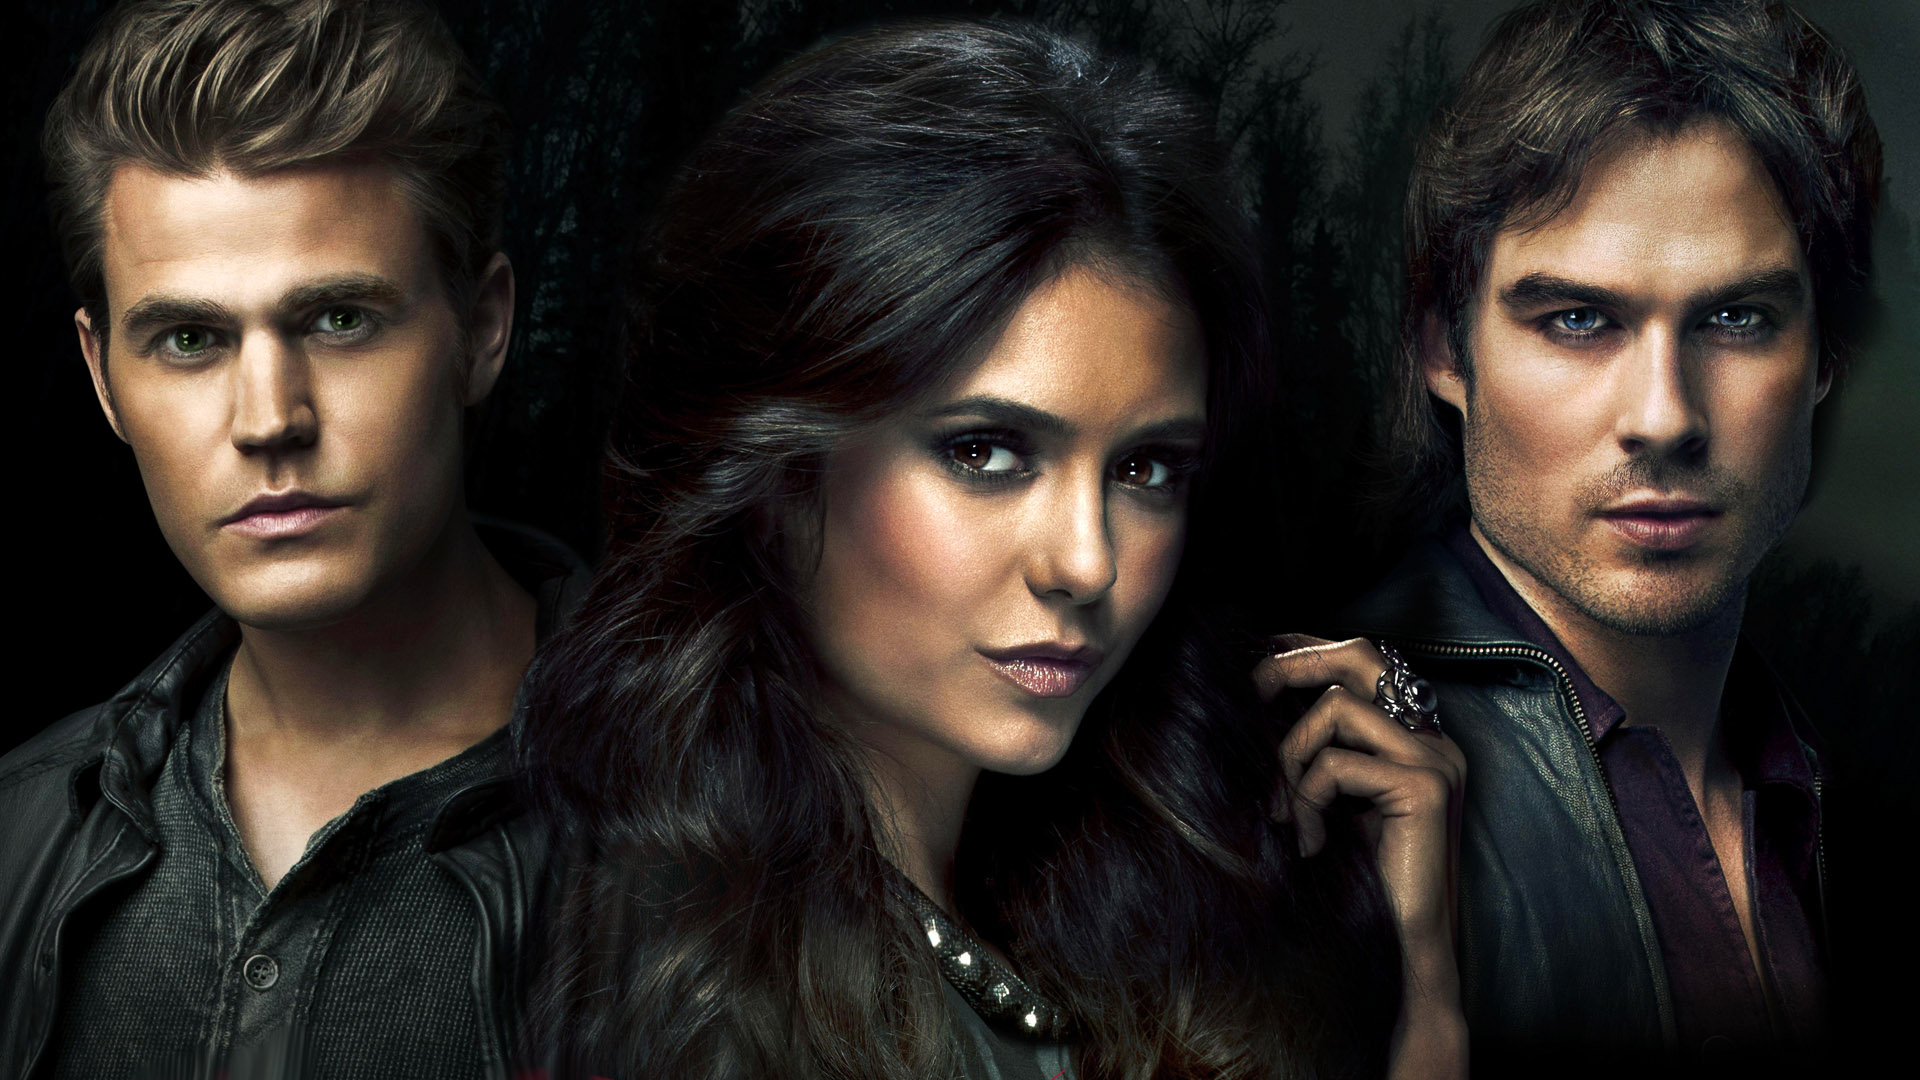 best The Vampire Diaries Posters Wallpapers images on Pinterest